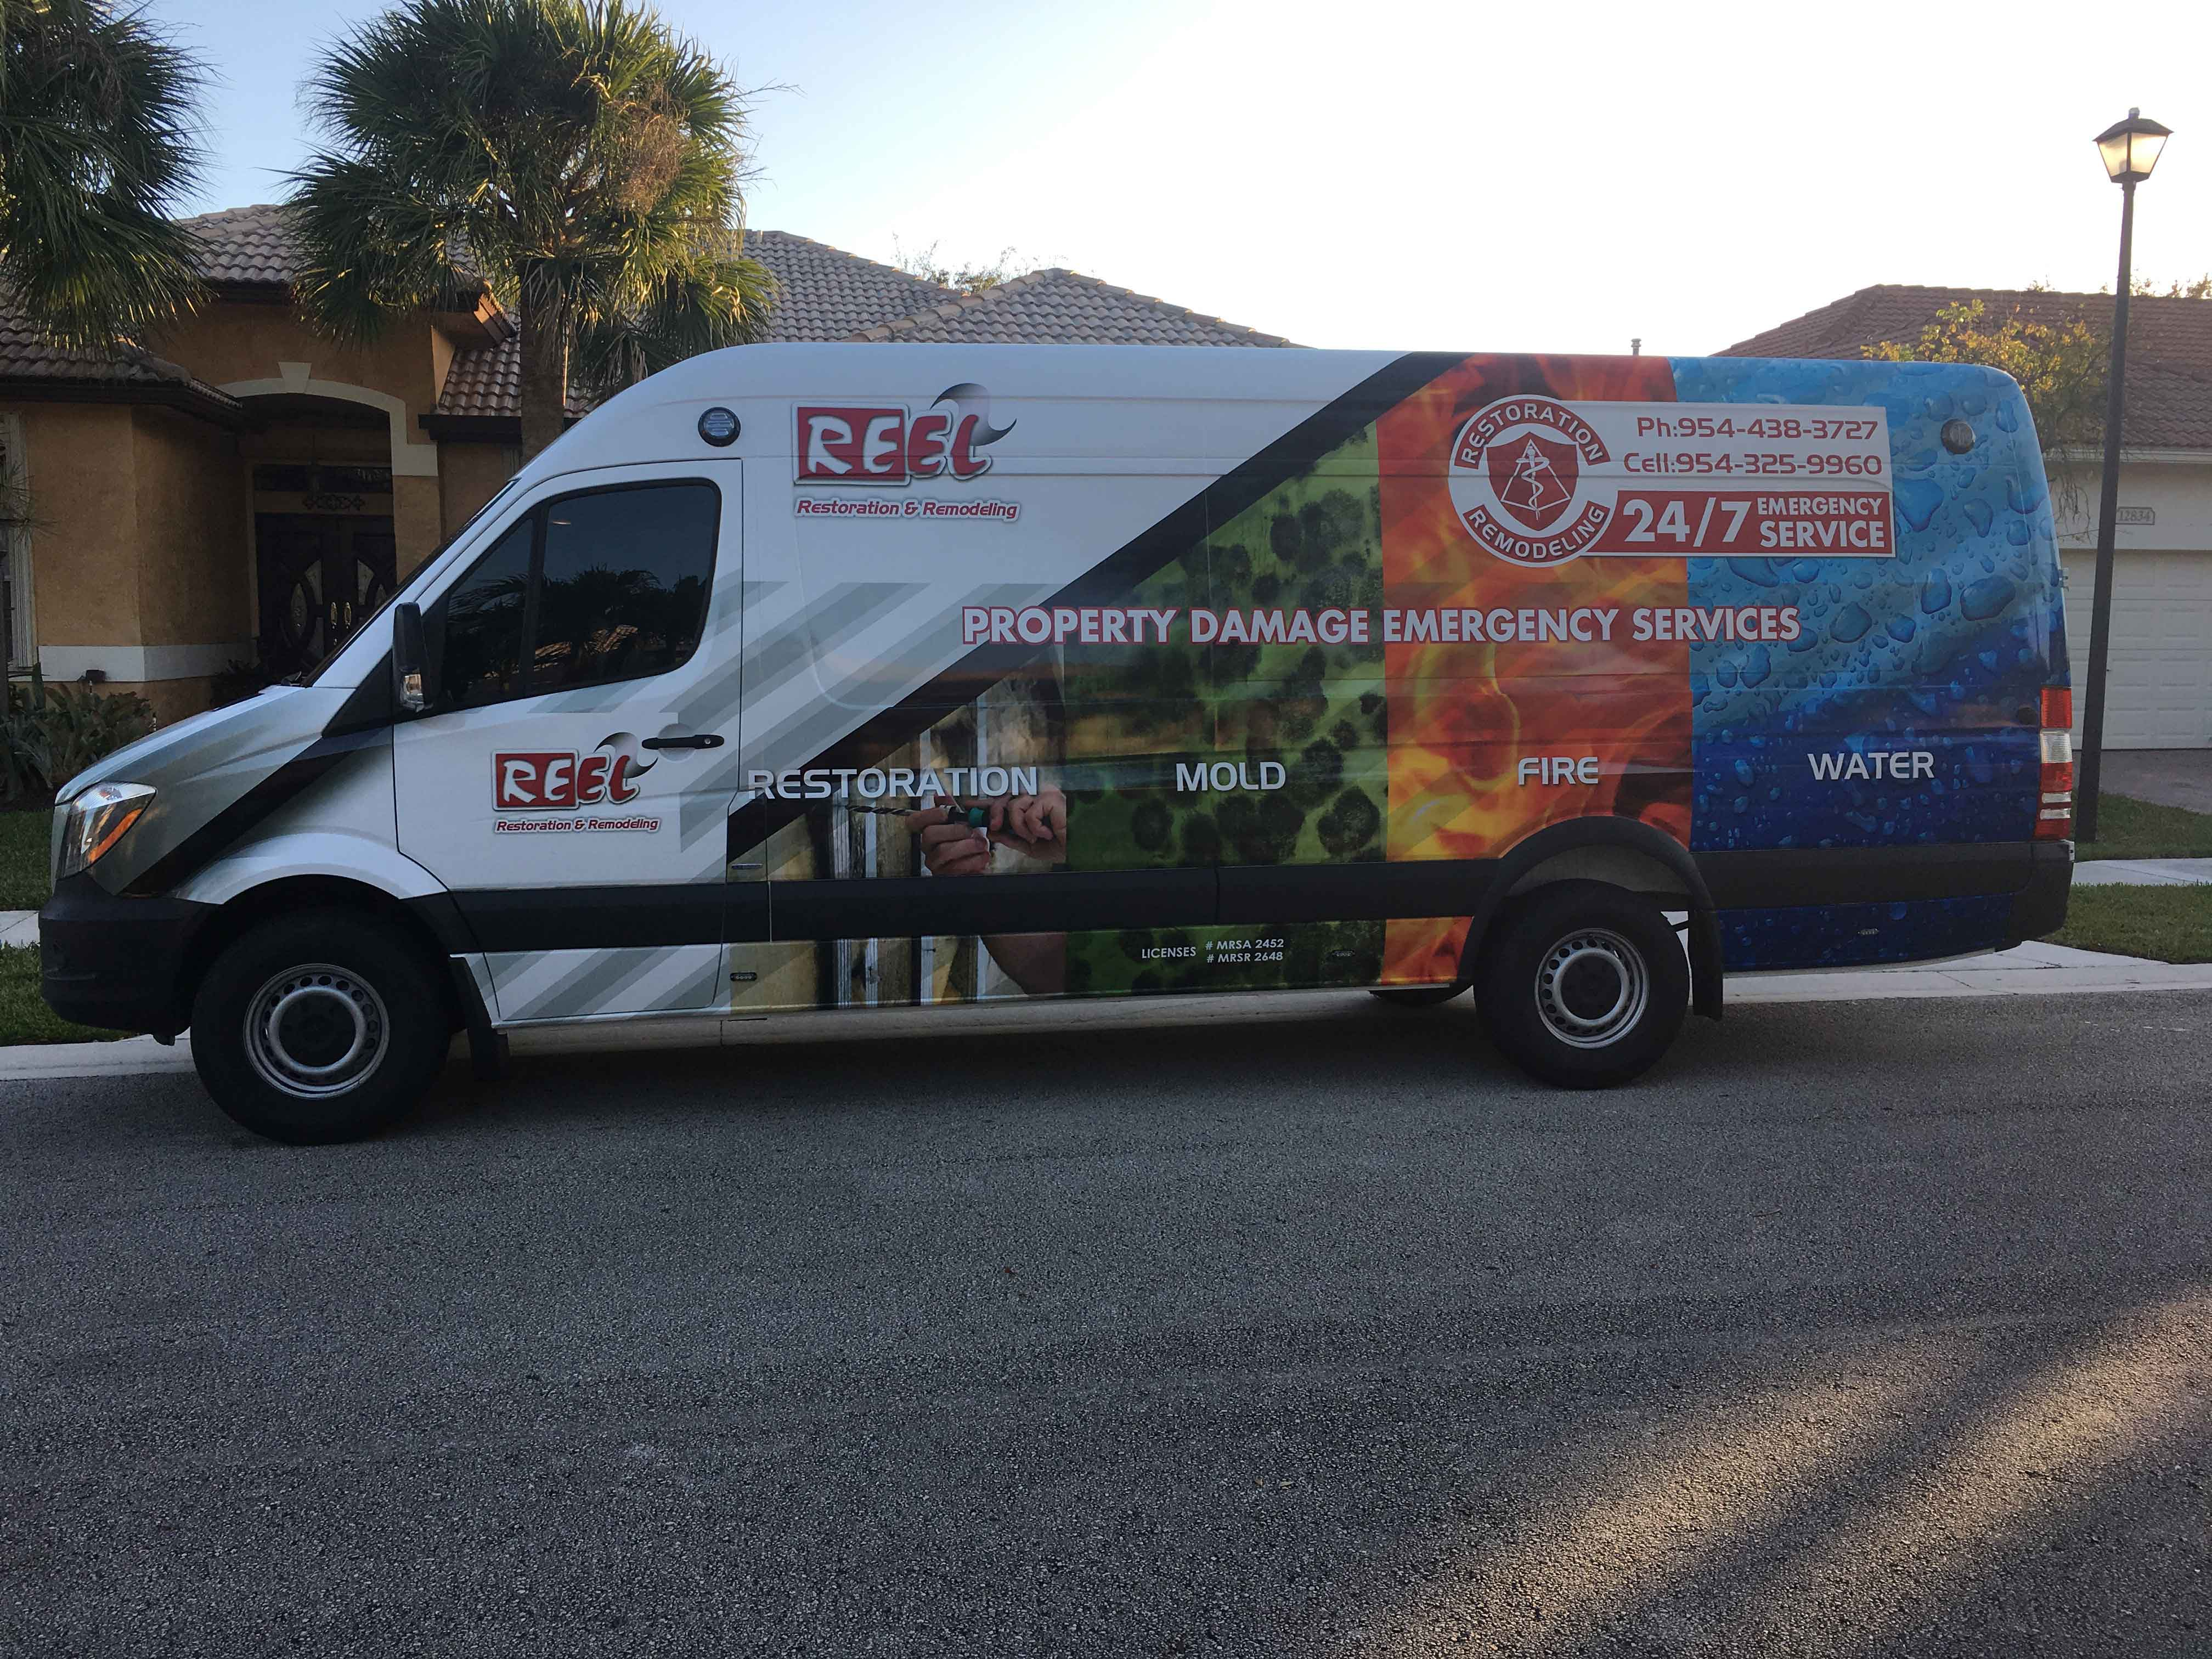 Reel-Contractors-Truck-Commercial-Water-Mold-Fire-Company-Pembroke-Pines-Fl